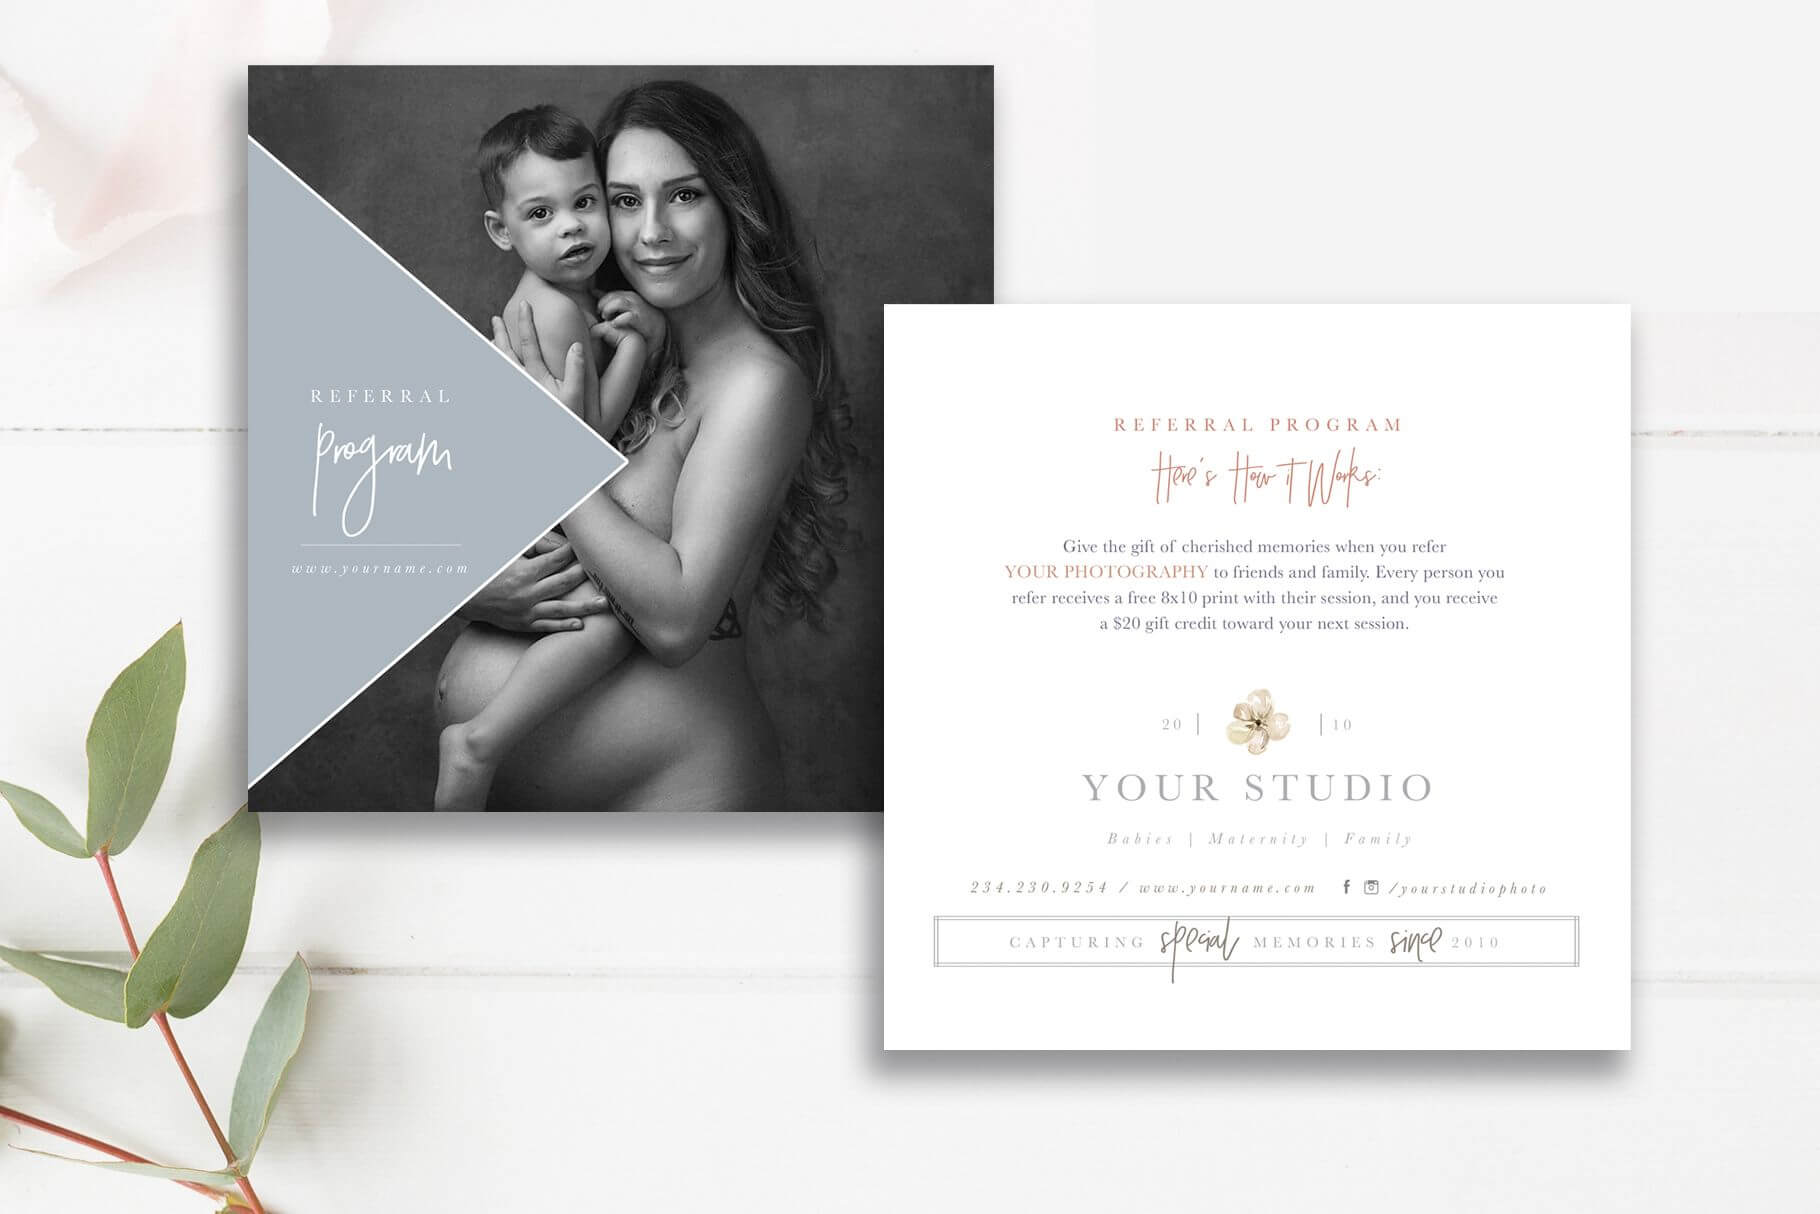 Photography Referral Card Template, Referral Program | In Photography Referral Card Templates